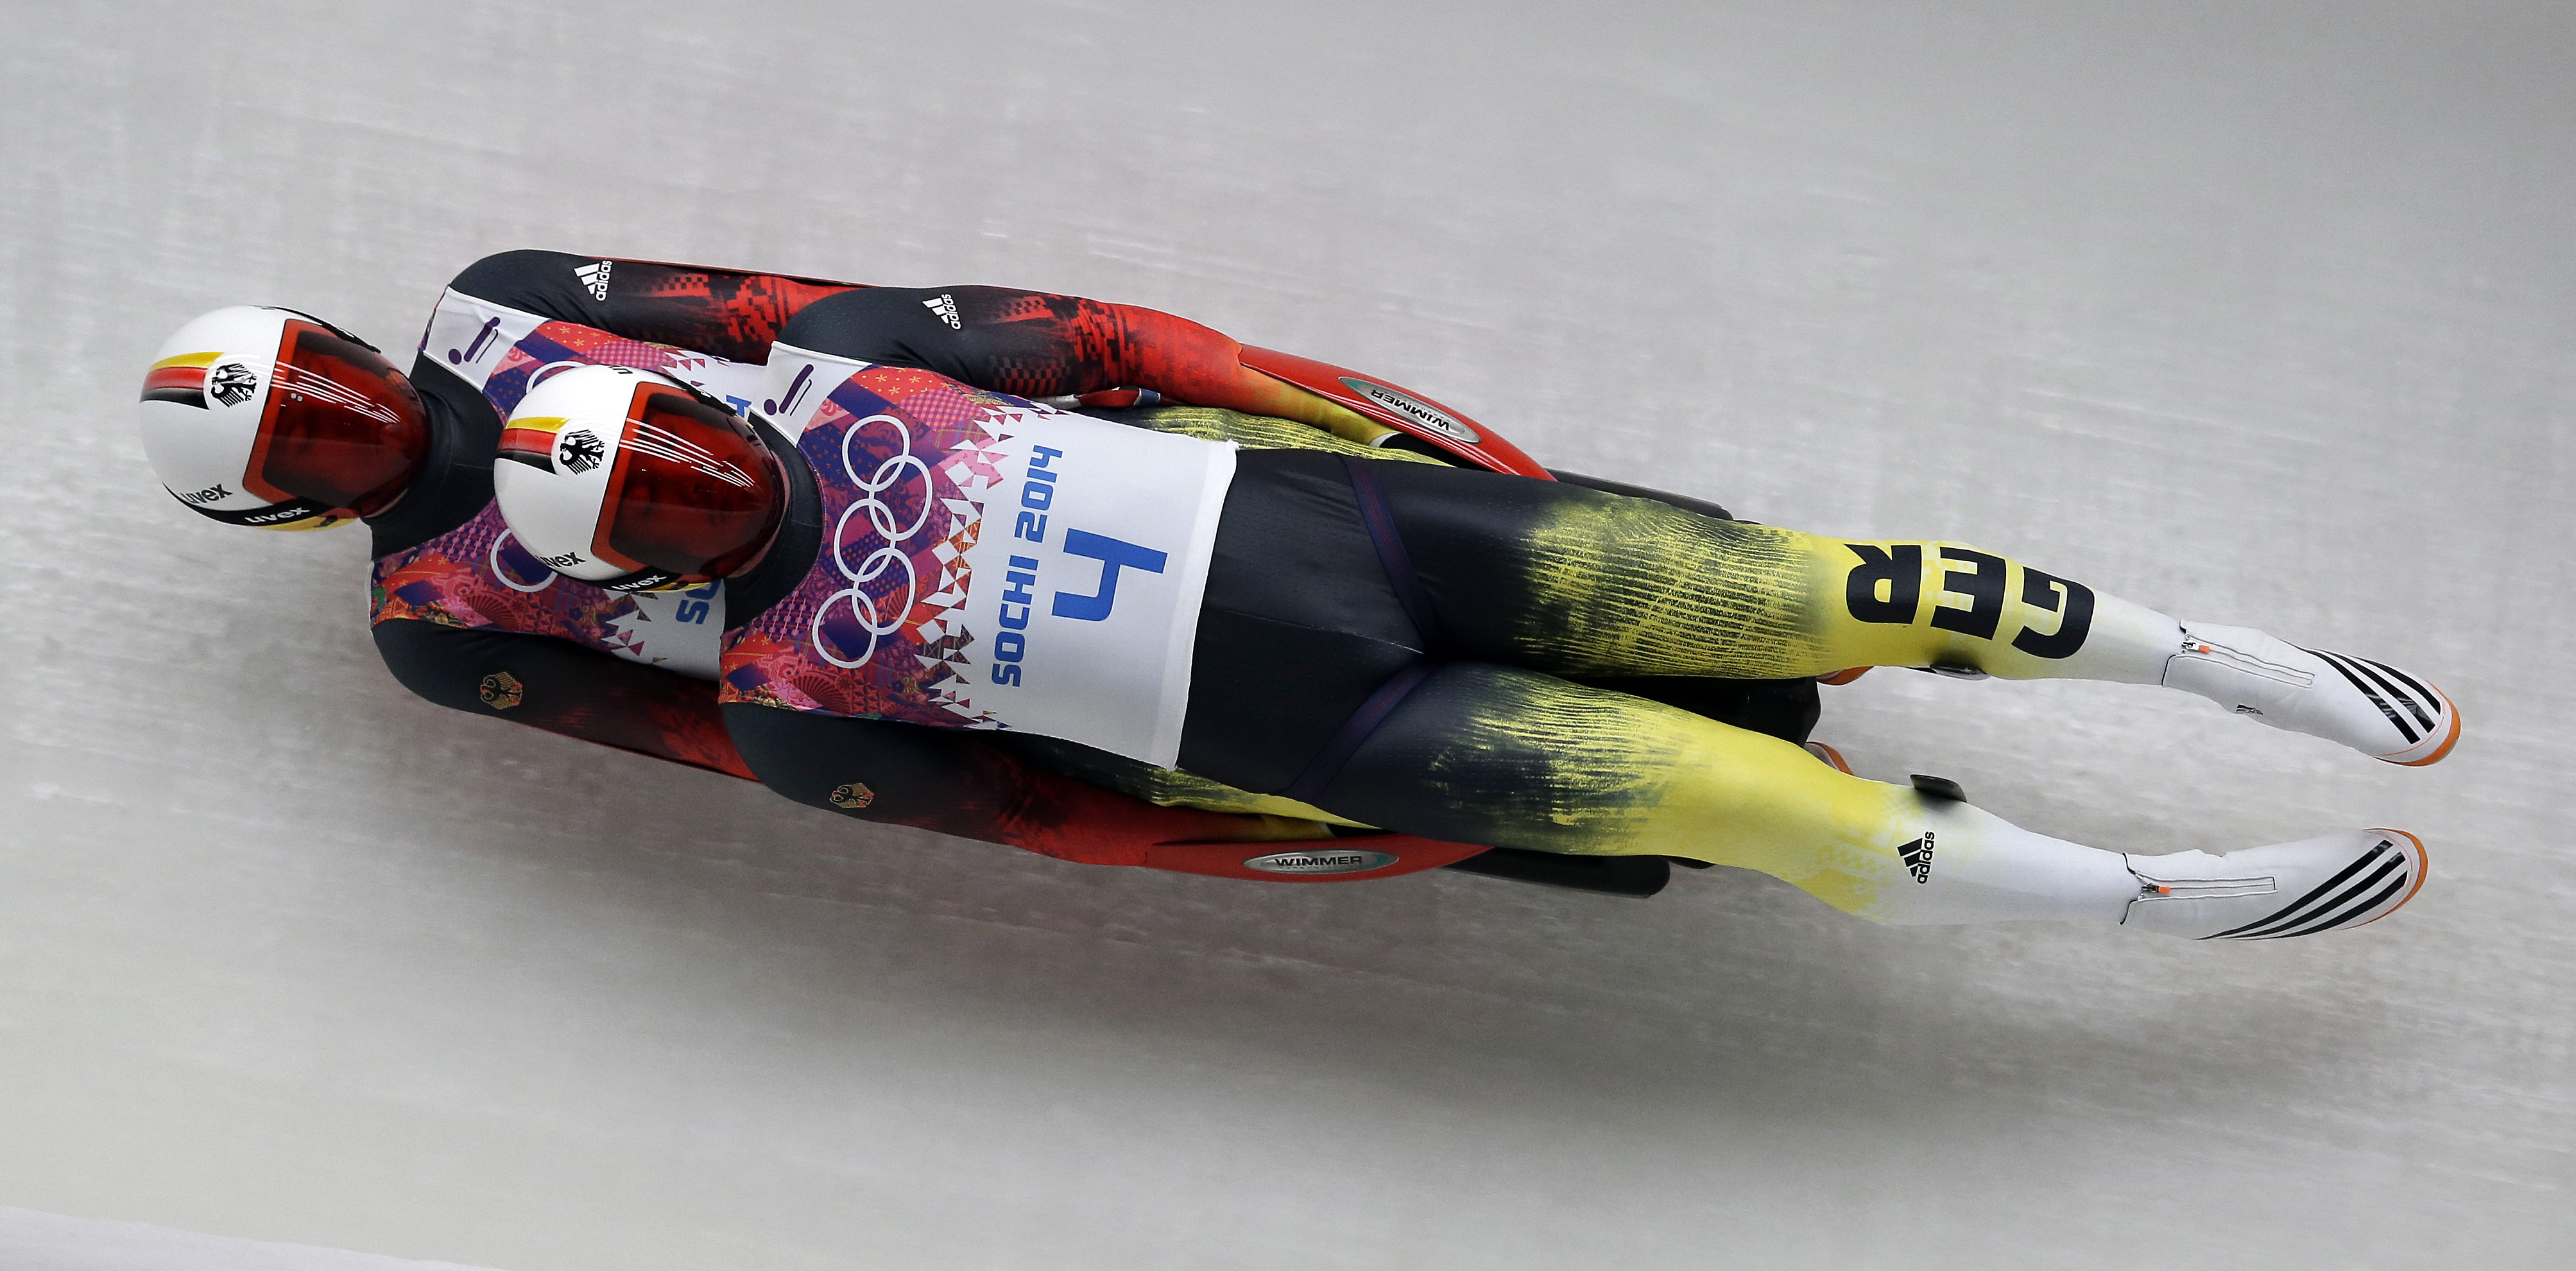 Germany's Wendl, Arlt win doubles luge | The Japan Times